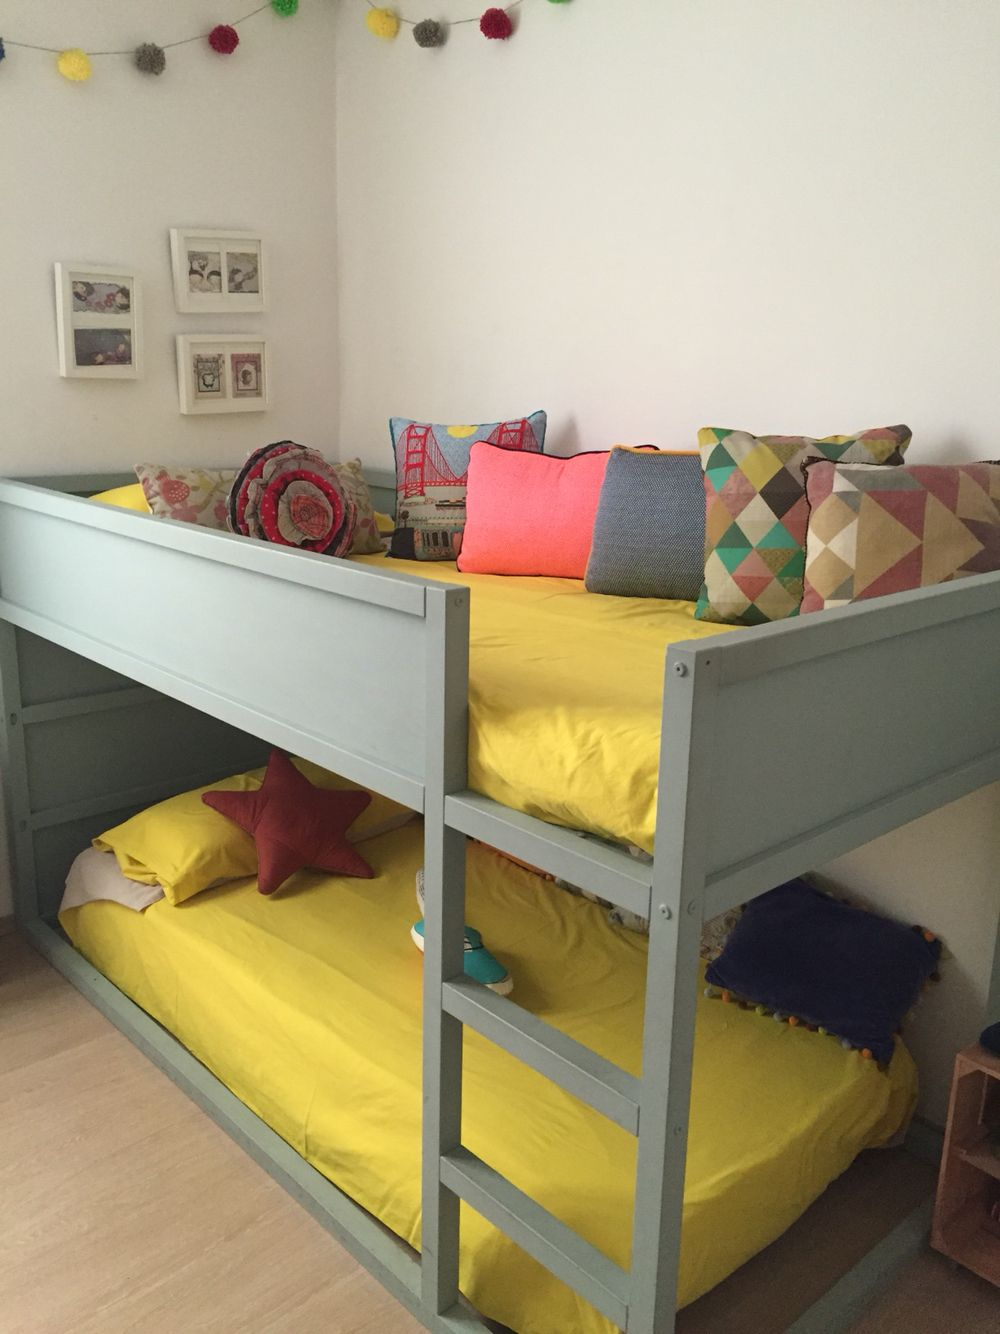 Ikea Hack Kura Bed Ikea Kids Bed Ikea Kura Bed Space Kids Room